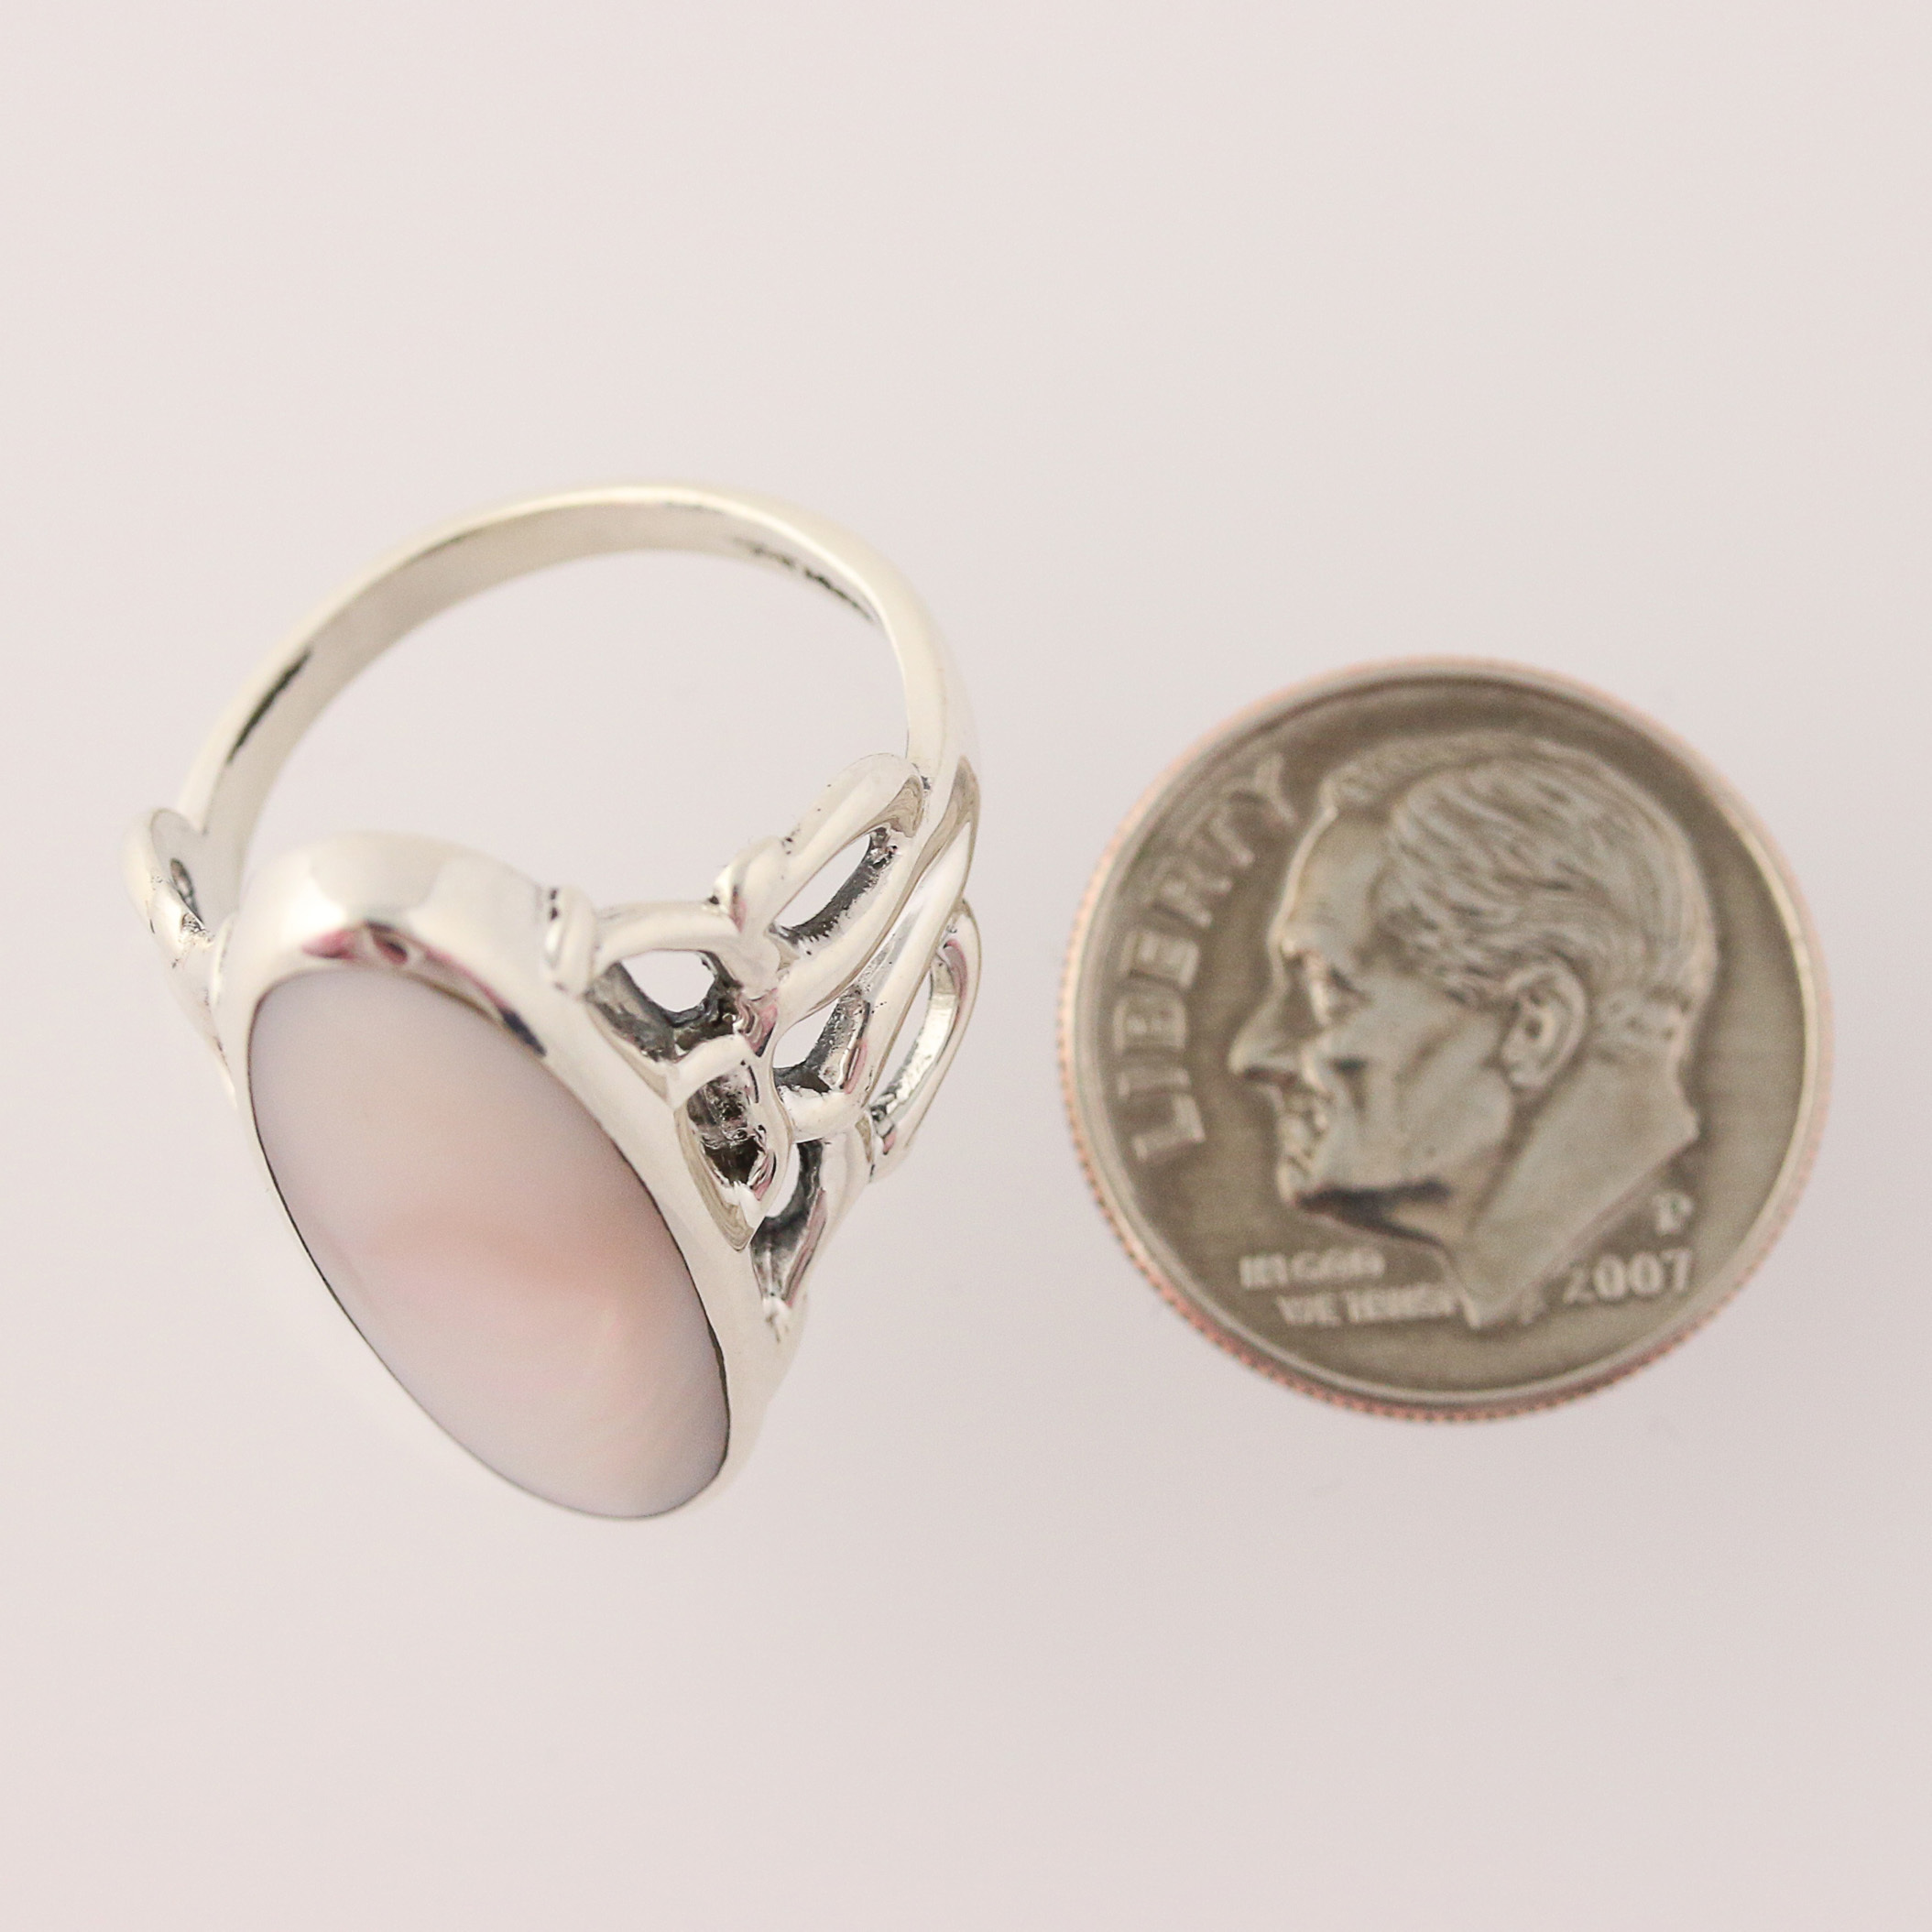 new kabana of pearl ring sterling silver size 6